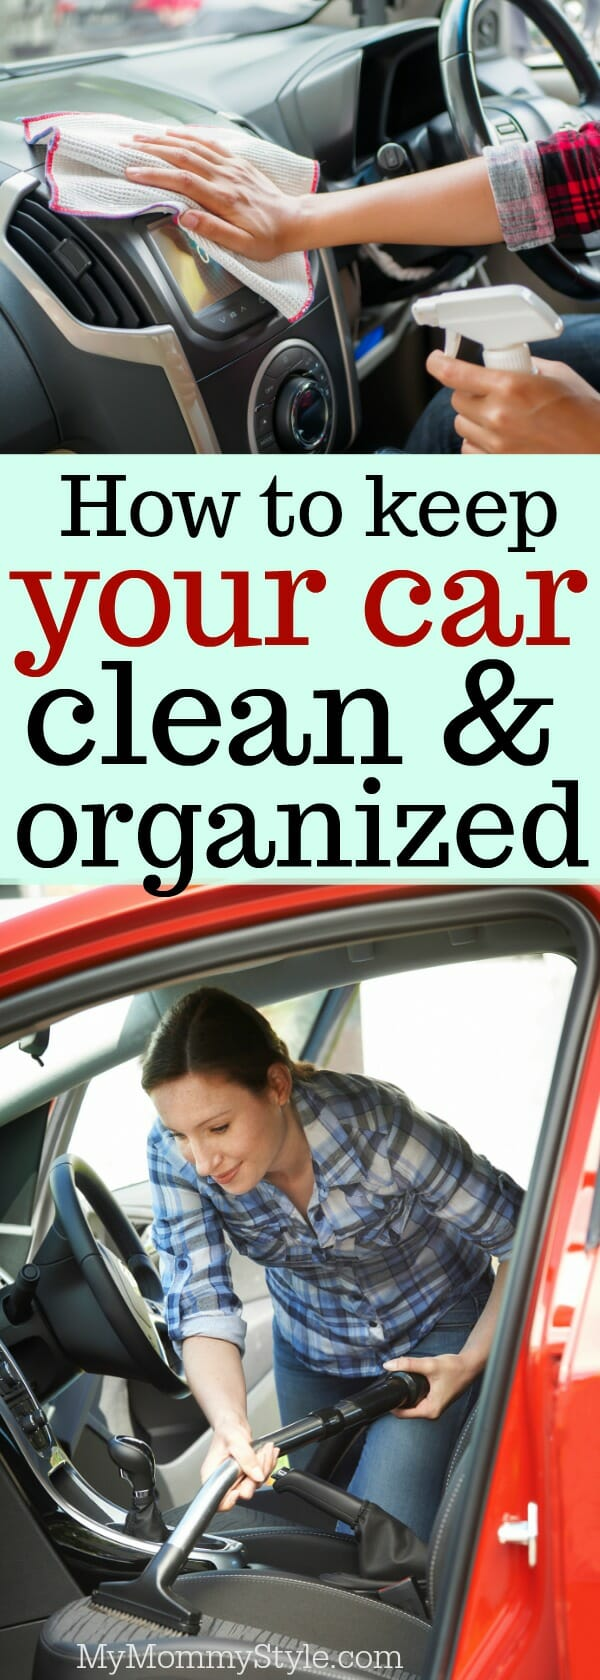 How to keep the family car clean and organized my mommy style How to keep your car exterior clean